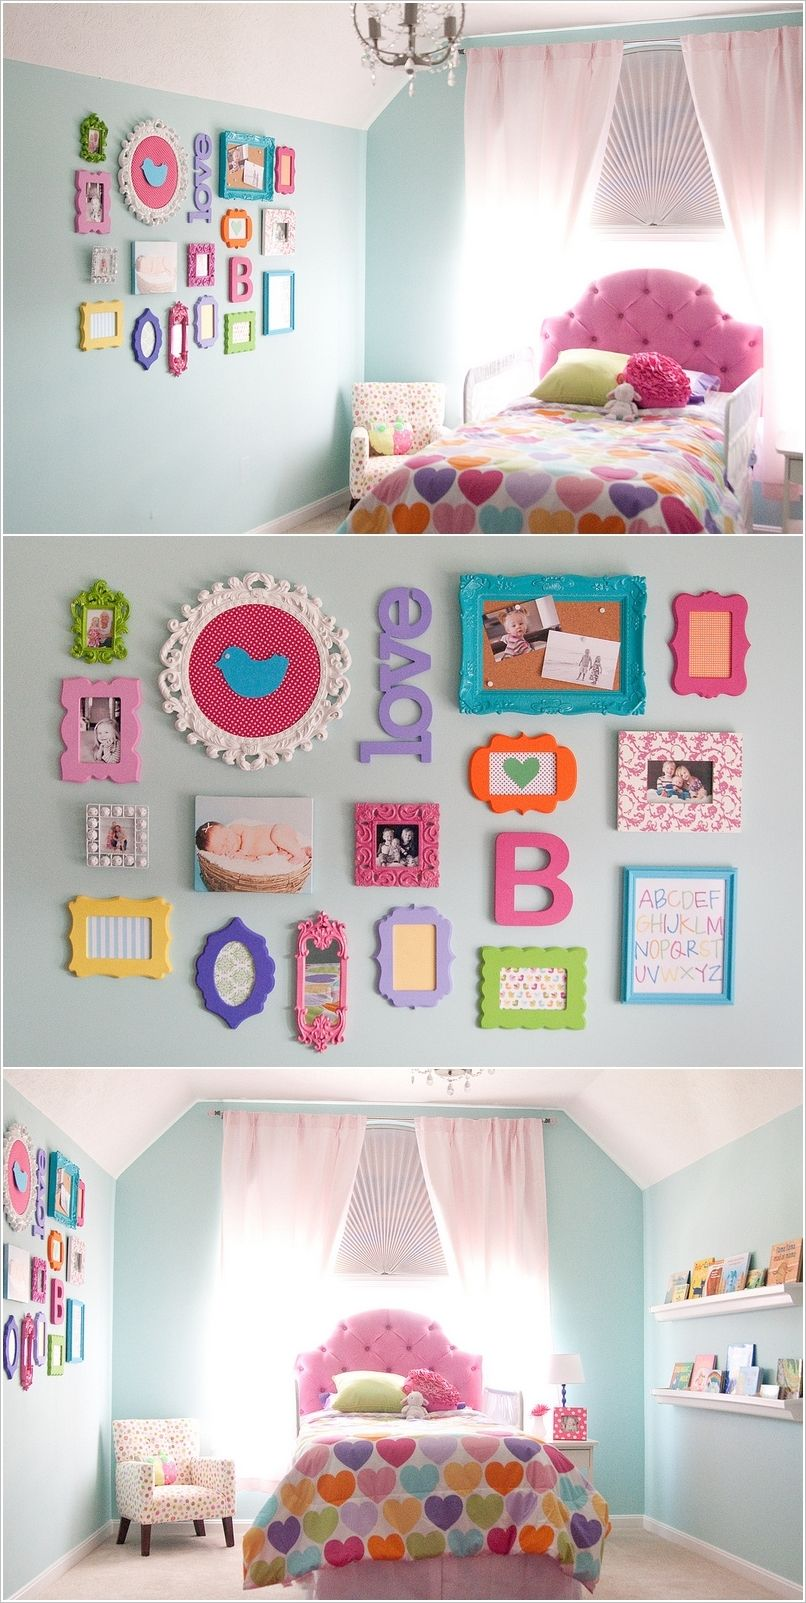 10 Cute Ideas To Decorate A Toddler Girl S Room Girls Room Paint Girl Bedroom Decor Toddler Girl Room